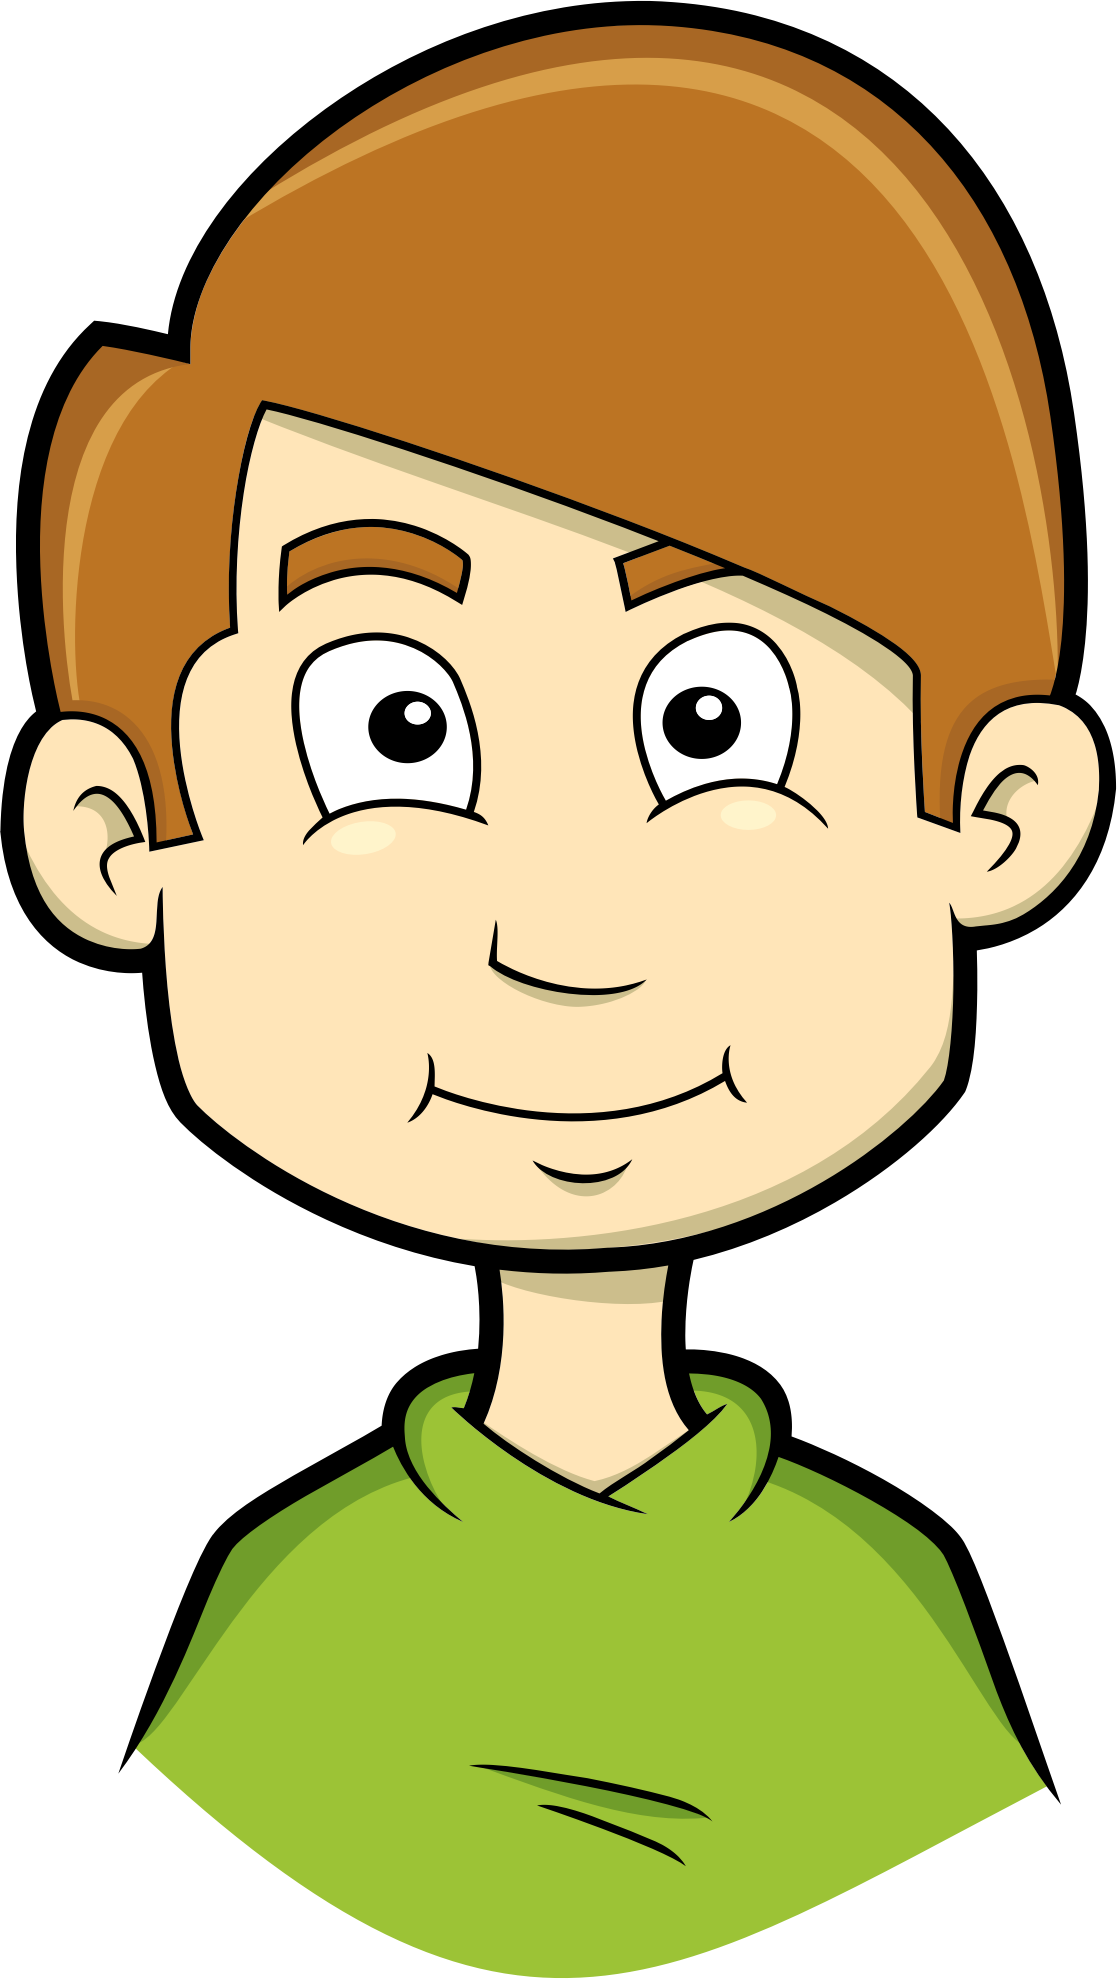 transparent download Nose free on dumielauxepices. Boys clipart cricket